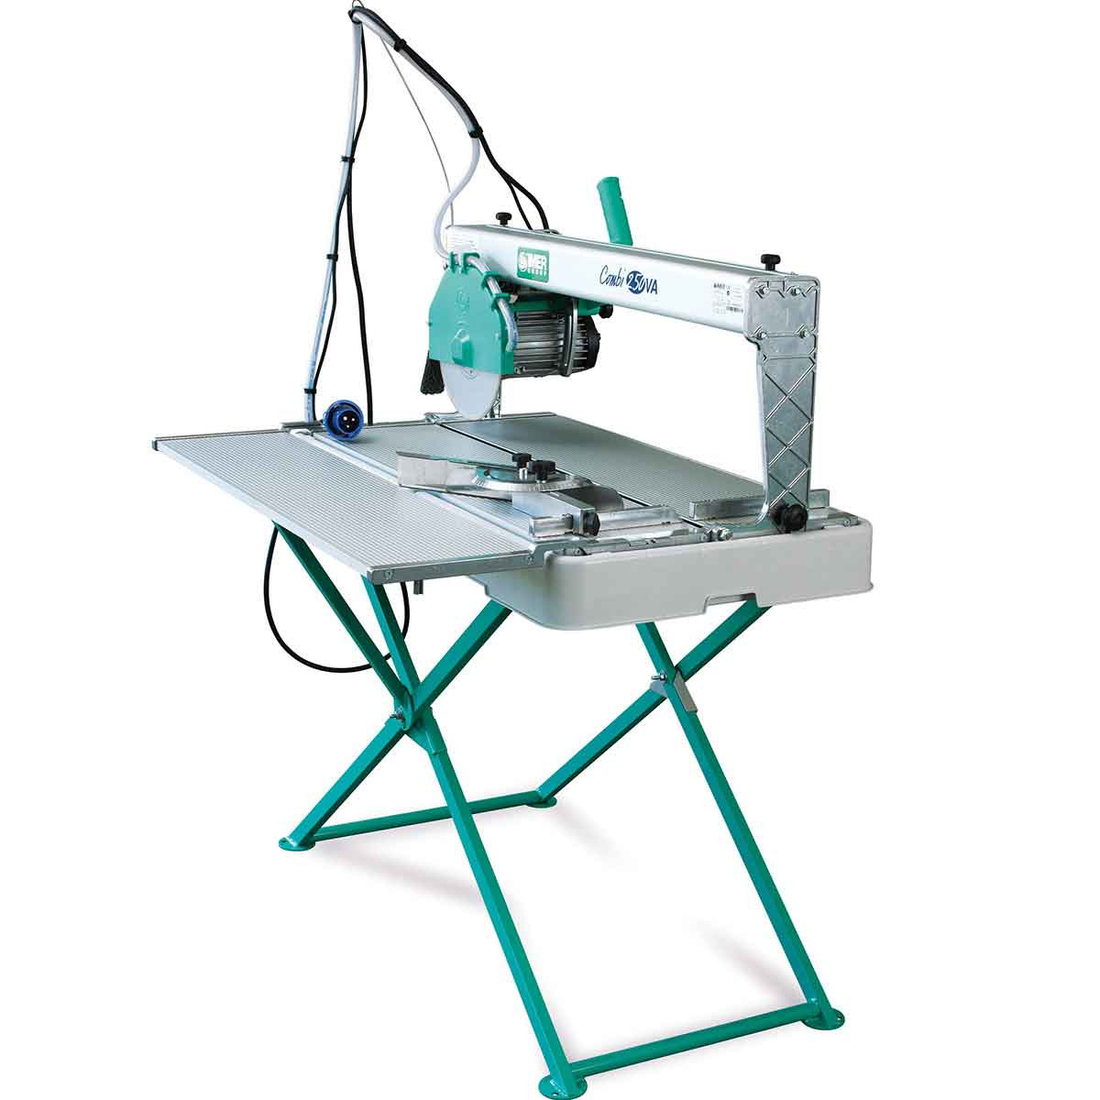 Tile Saw Bench Plunge Cut 110V